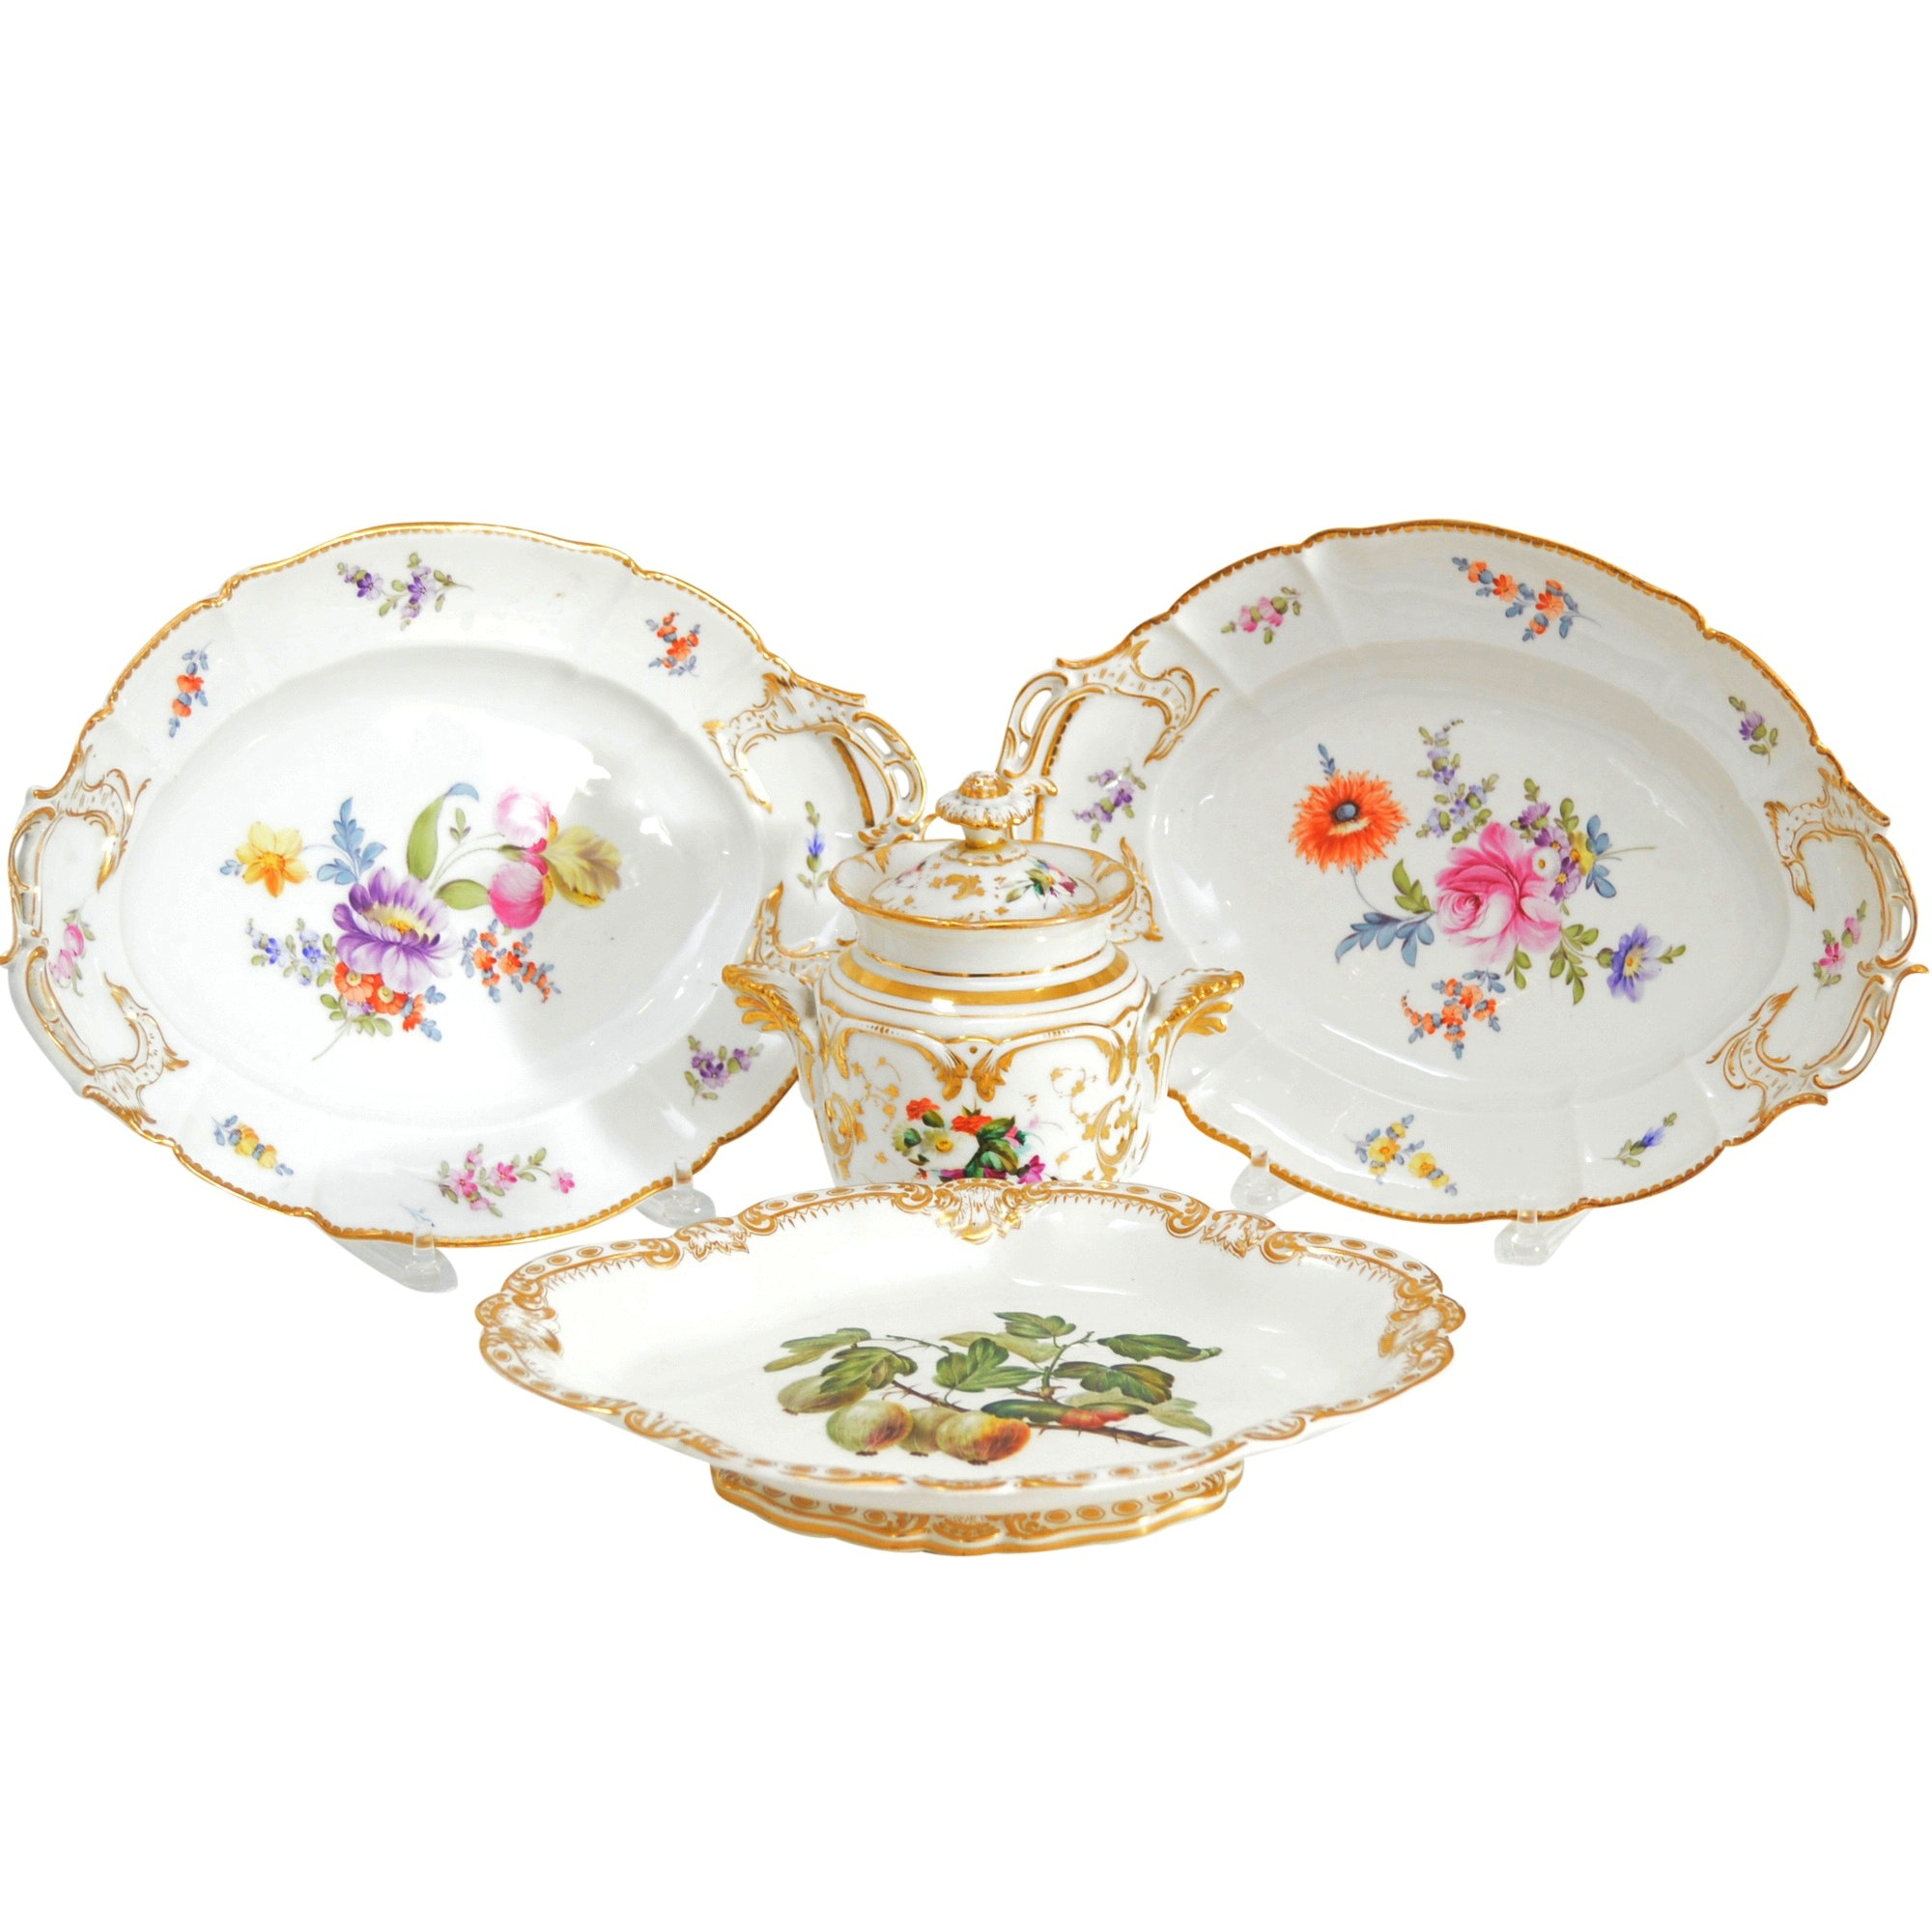 Vintage Porcelain Serveware with Nymphenburg